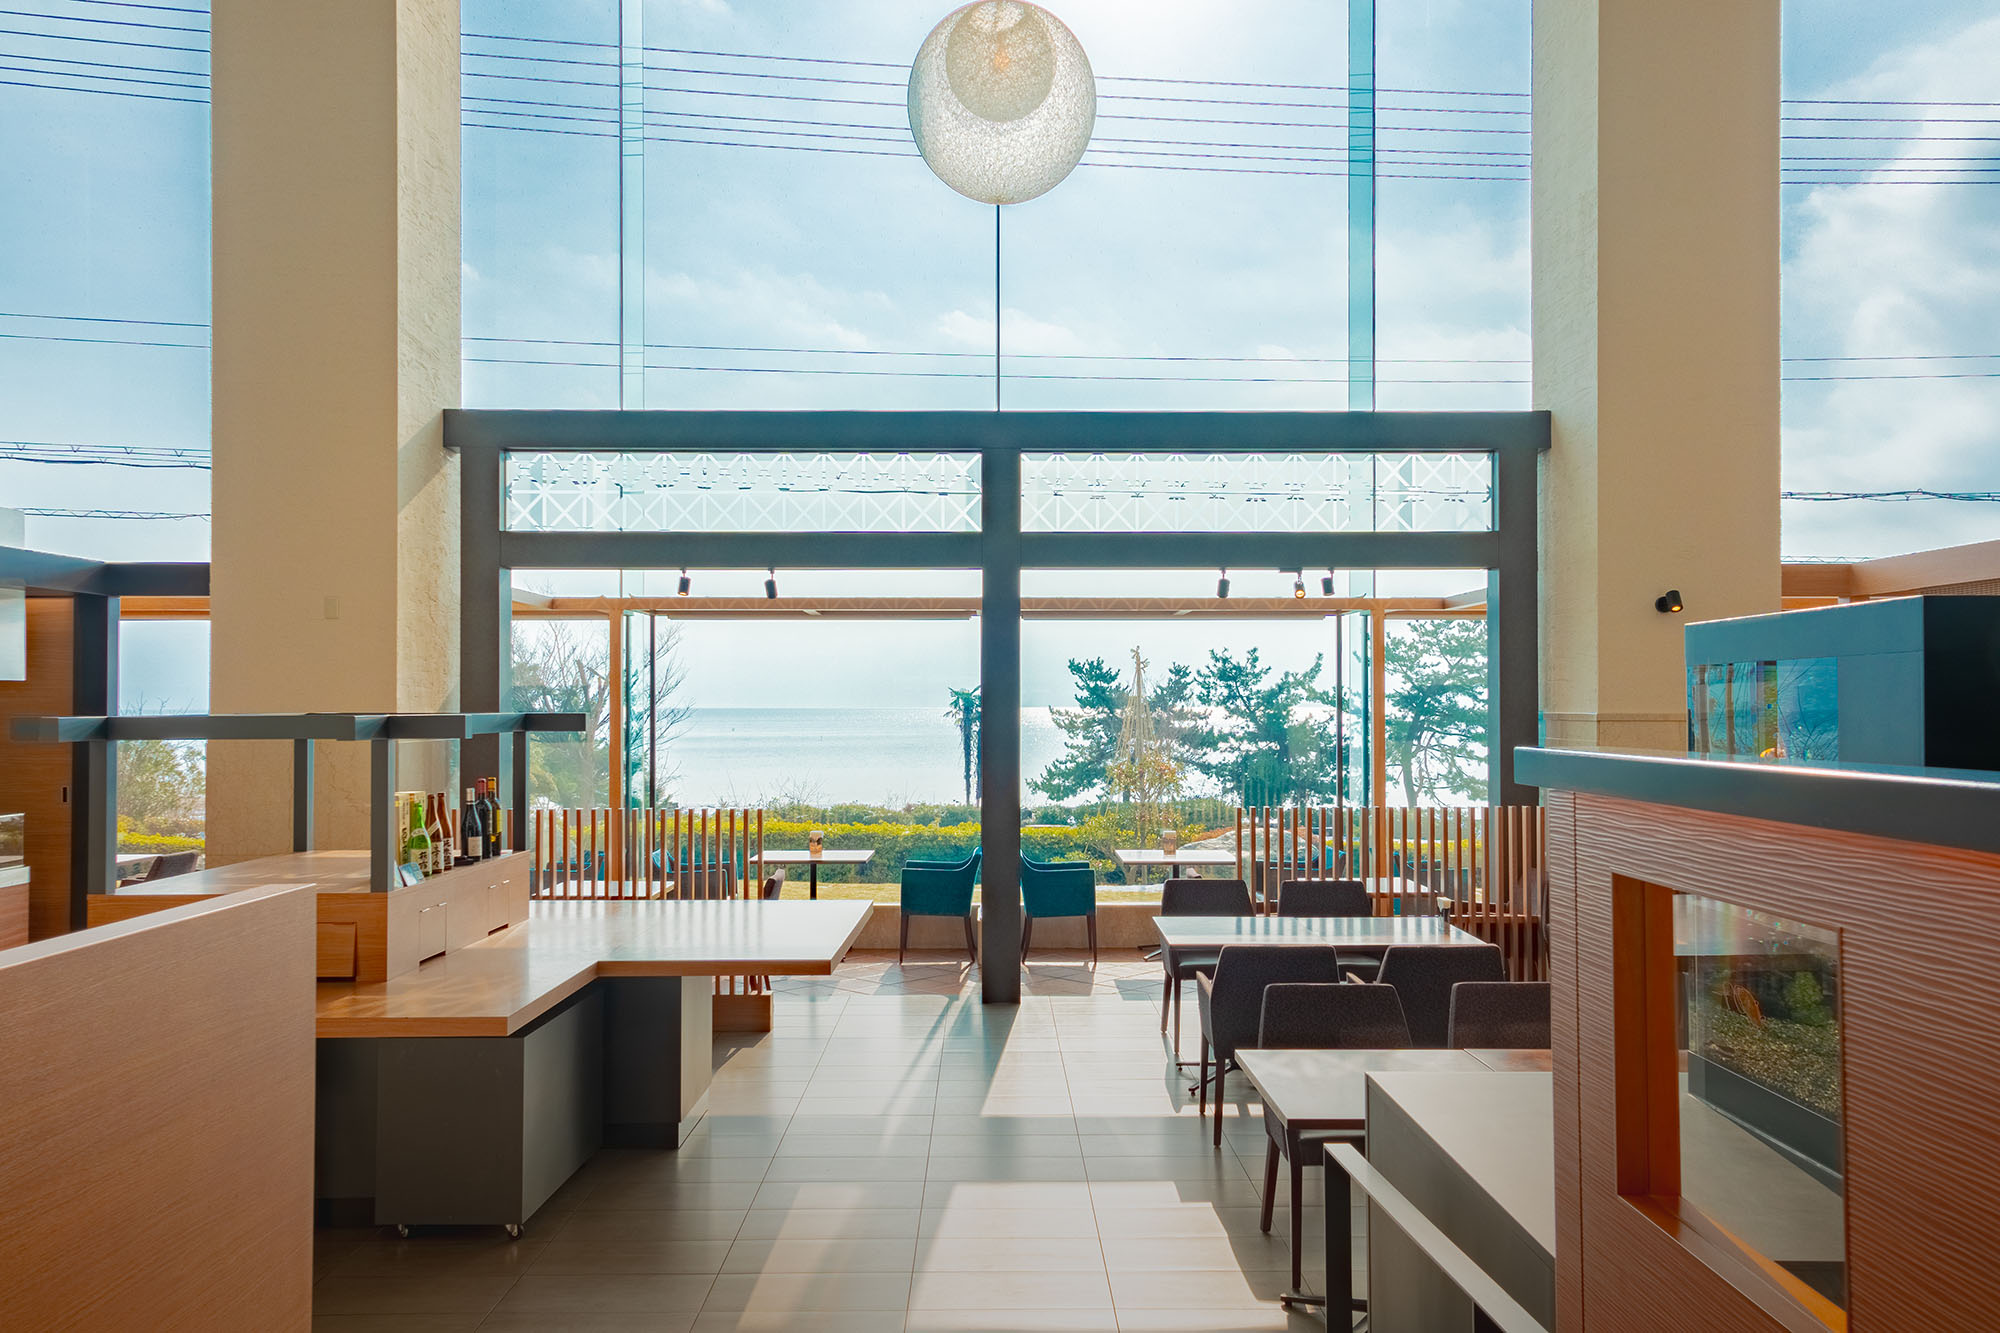 Restaurant with a view of Lake Biwa